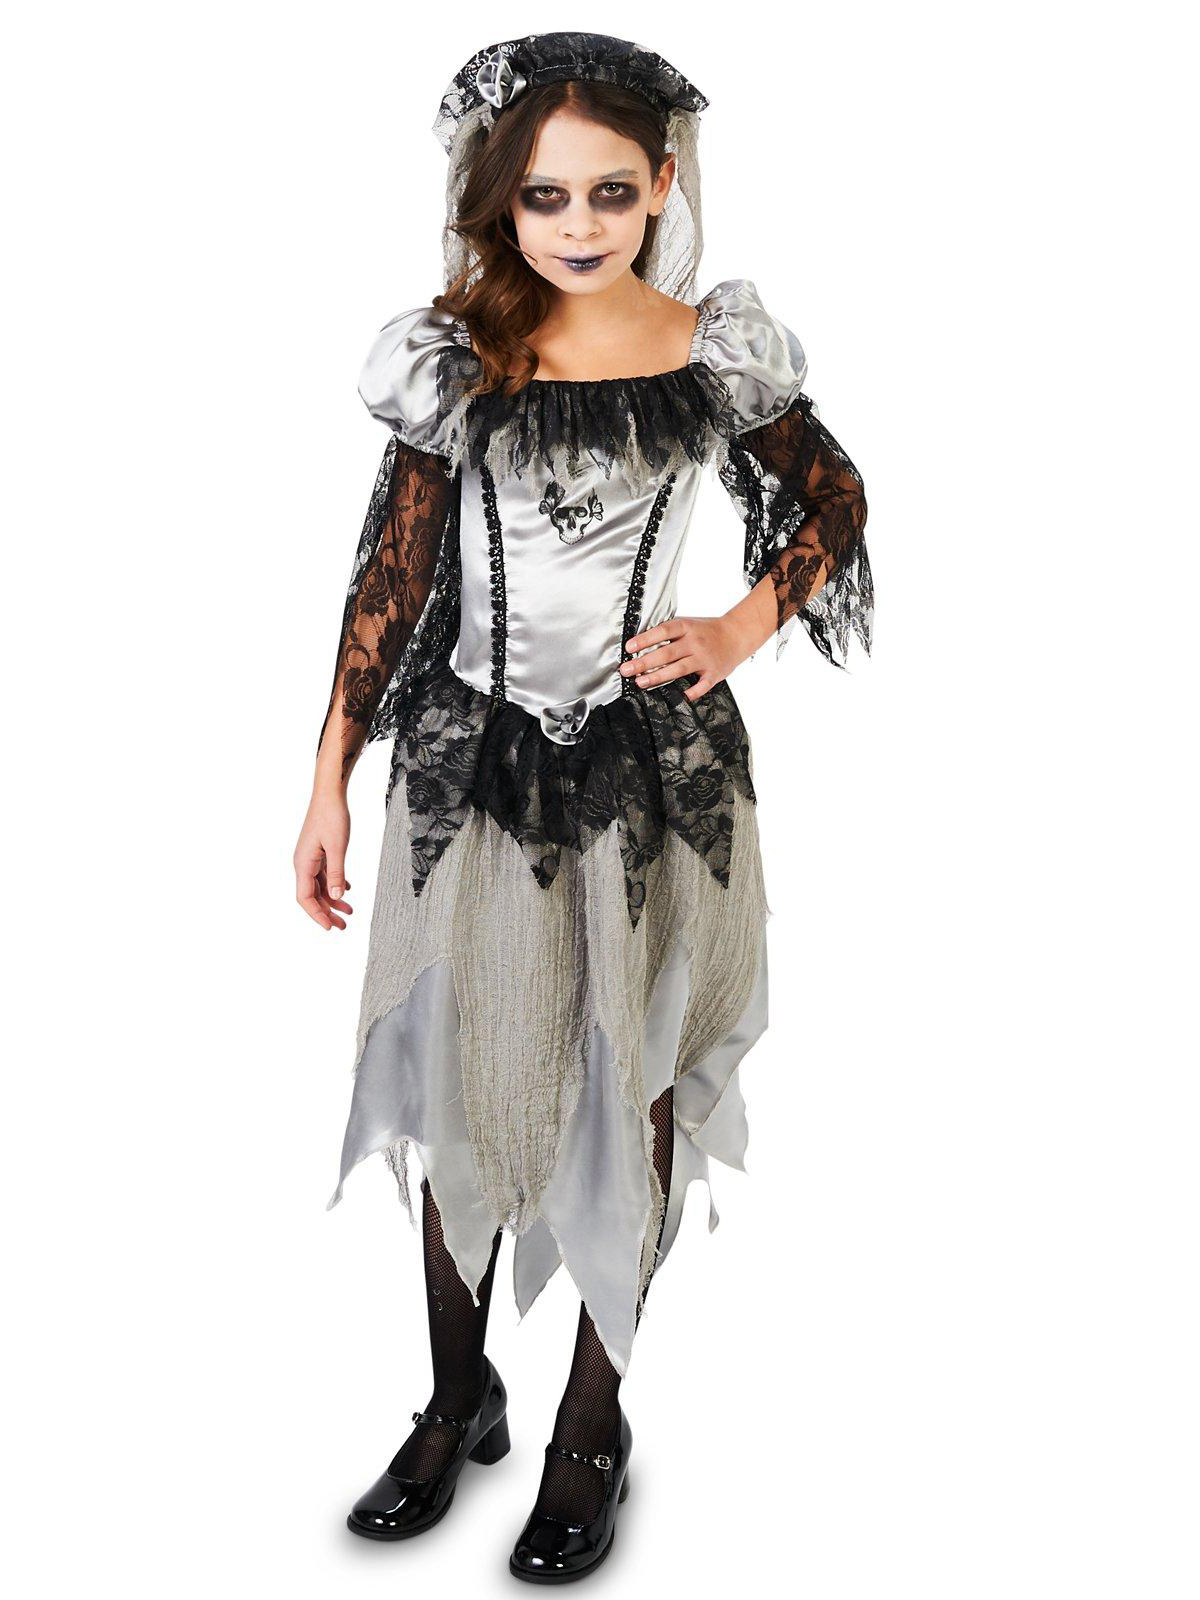 Haunted Princess Bride Costume For Kids